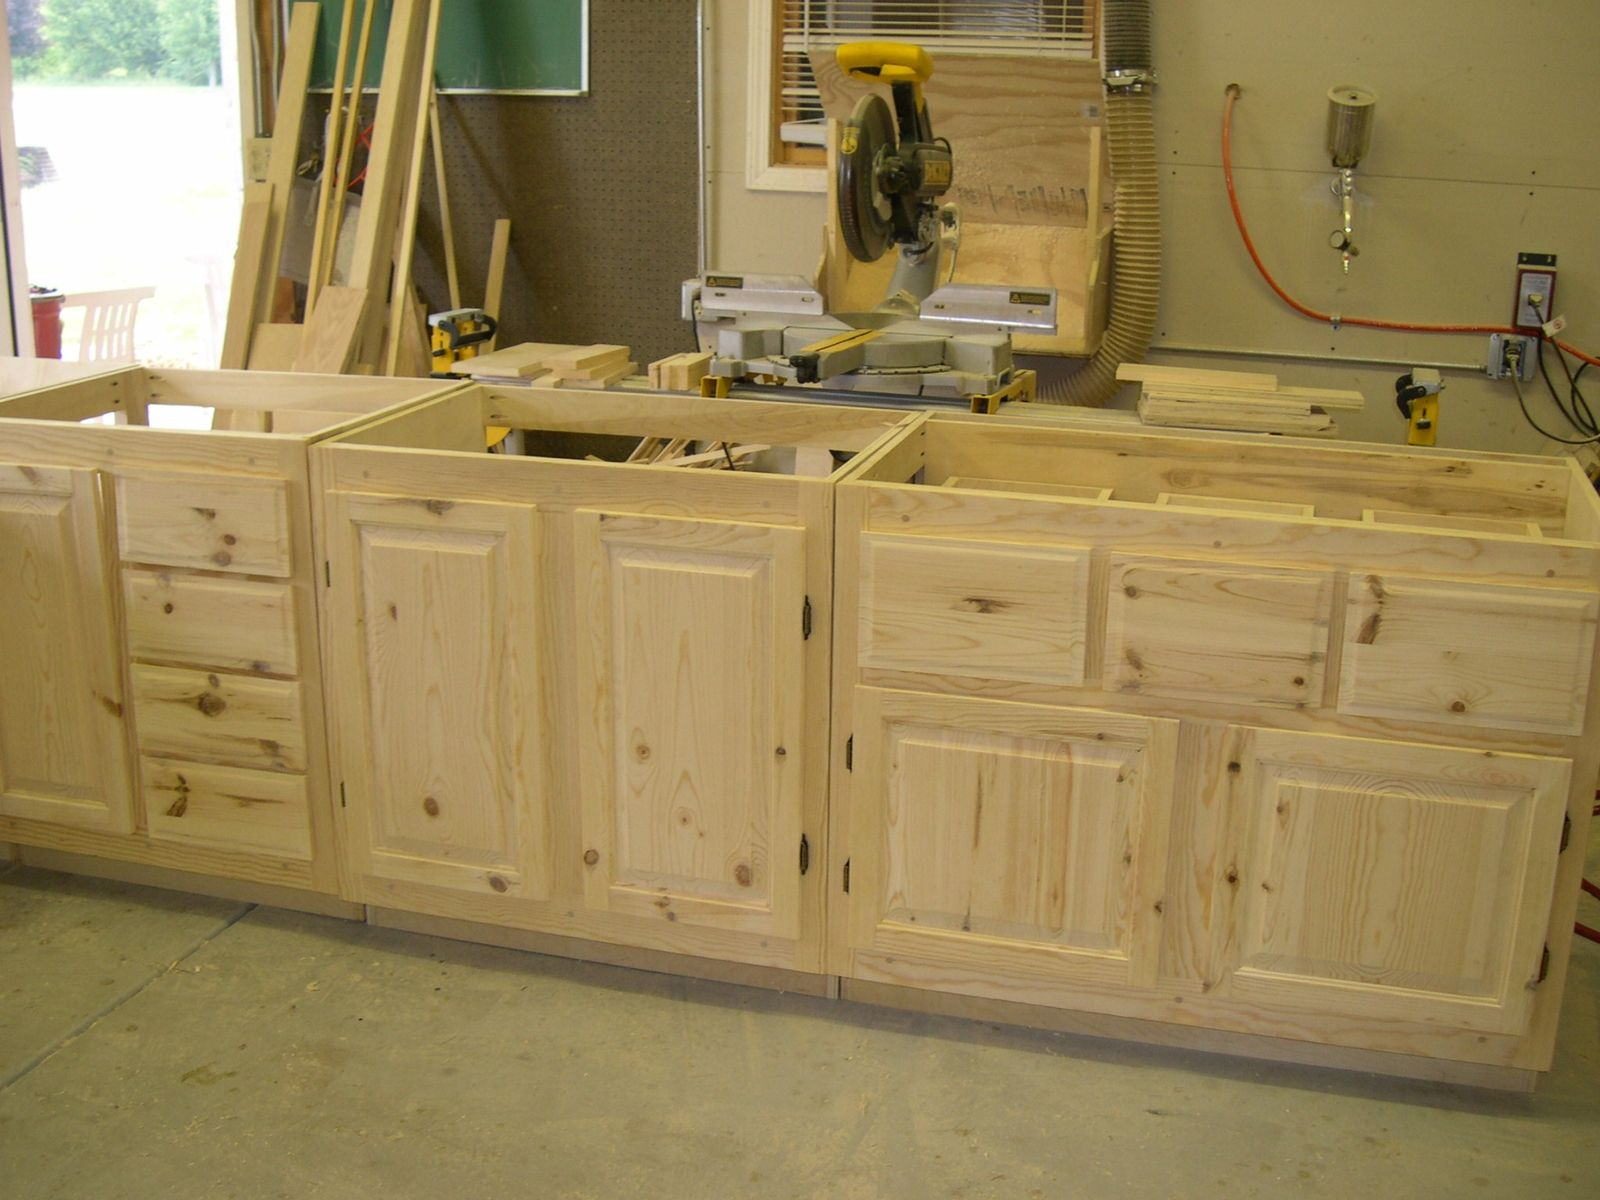 Handmade knotty pine cabinets by pureamerican creations - Custom made cabinet ...